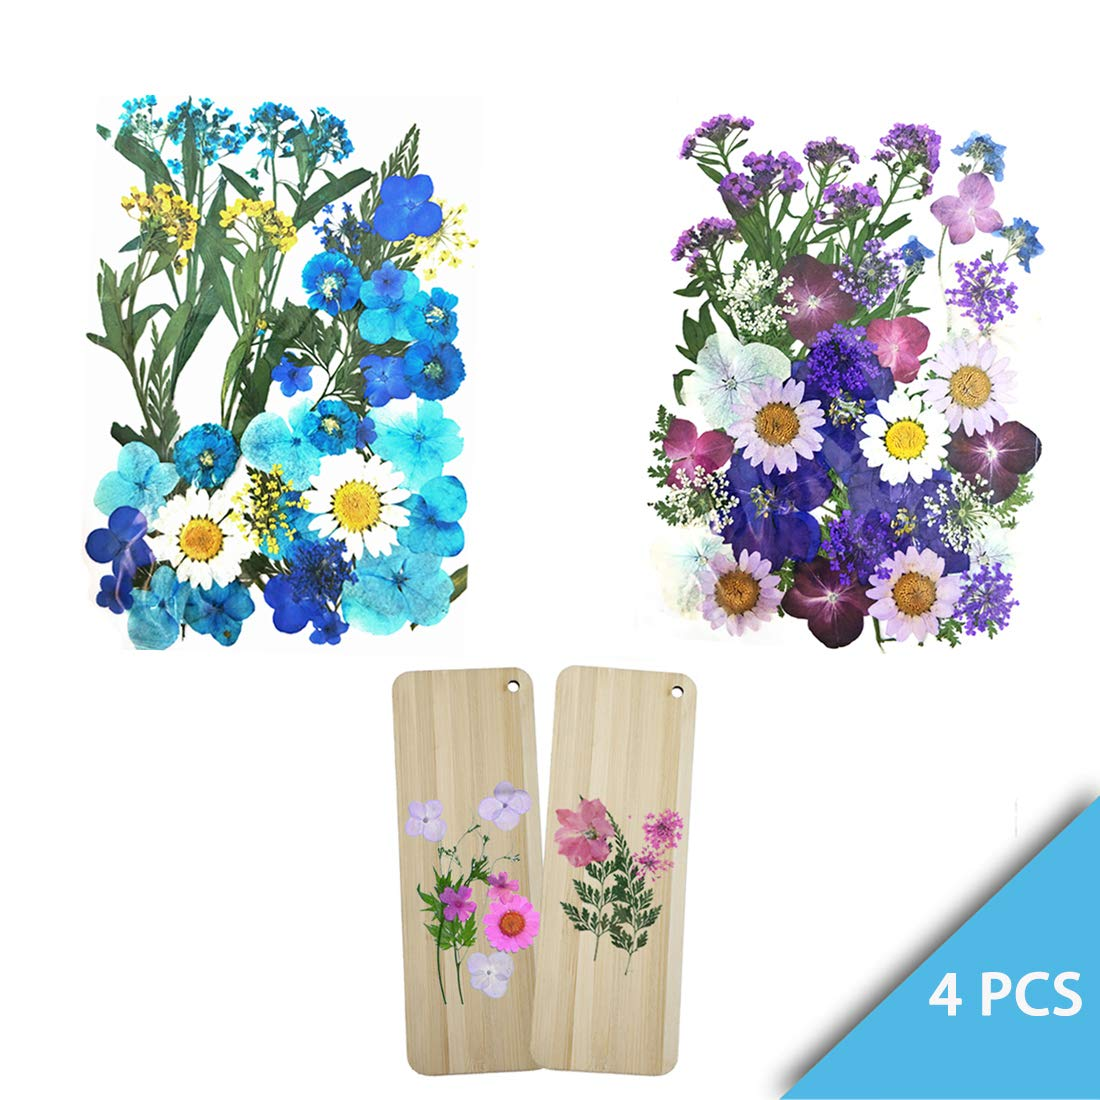 Set of 4 Packets Real Pressed Flowers Includes 2 DIY Flowers Wooden Bookmarks and 2 Dry Flowers Materials for Make Art & Craft